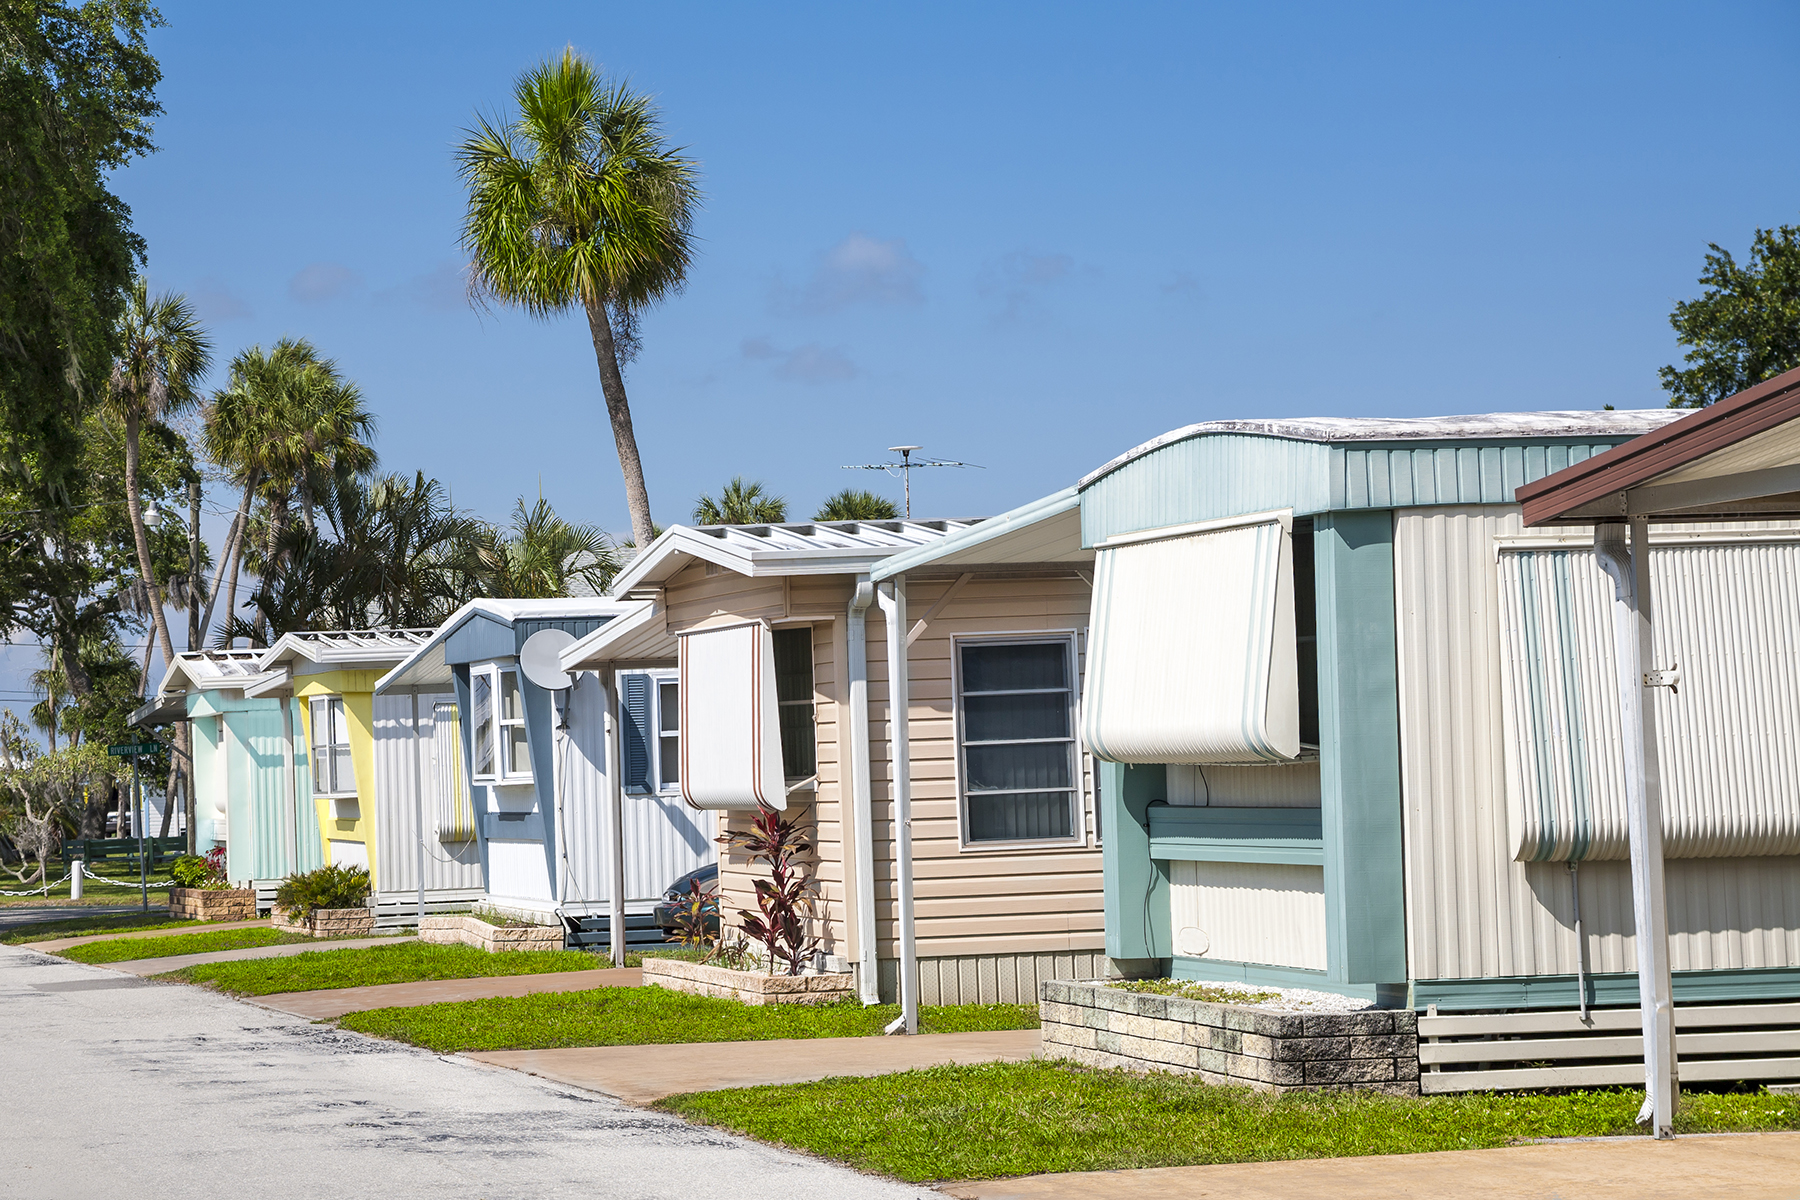 Mobile Home Cost Buy on mobile spy cost, katrina cottage cost, fresno home cost, log home cost, hello kitty home cost, mobile apps cost, mobile phone cost, prefab home cost,